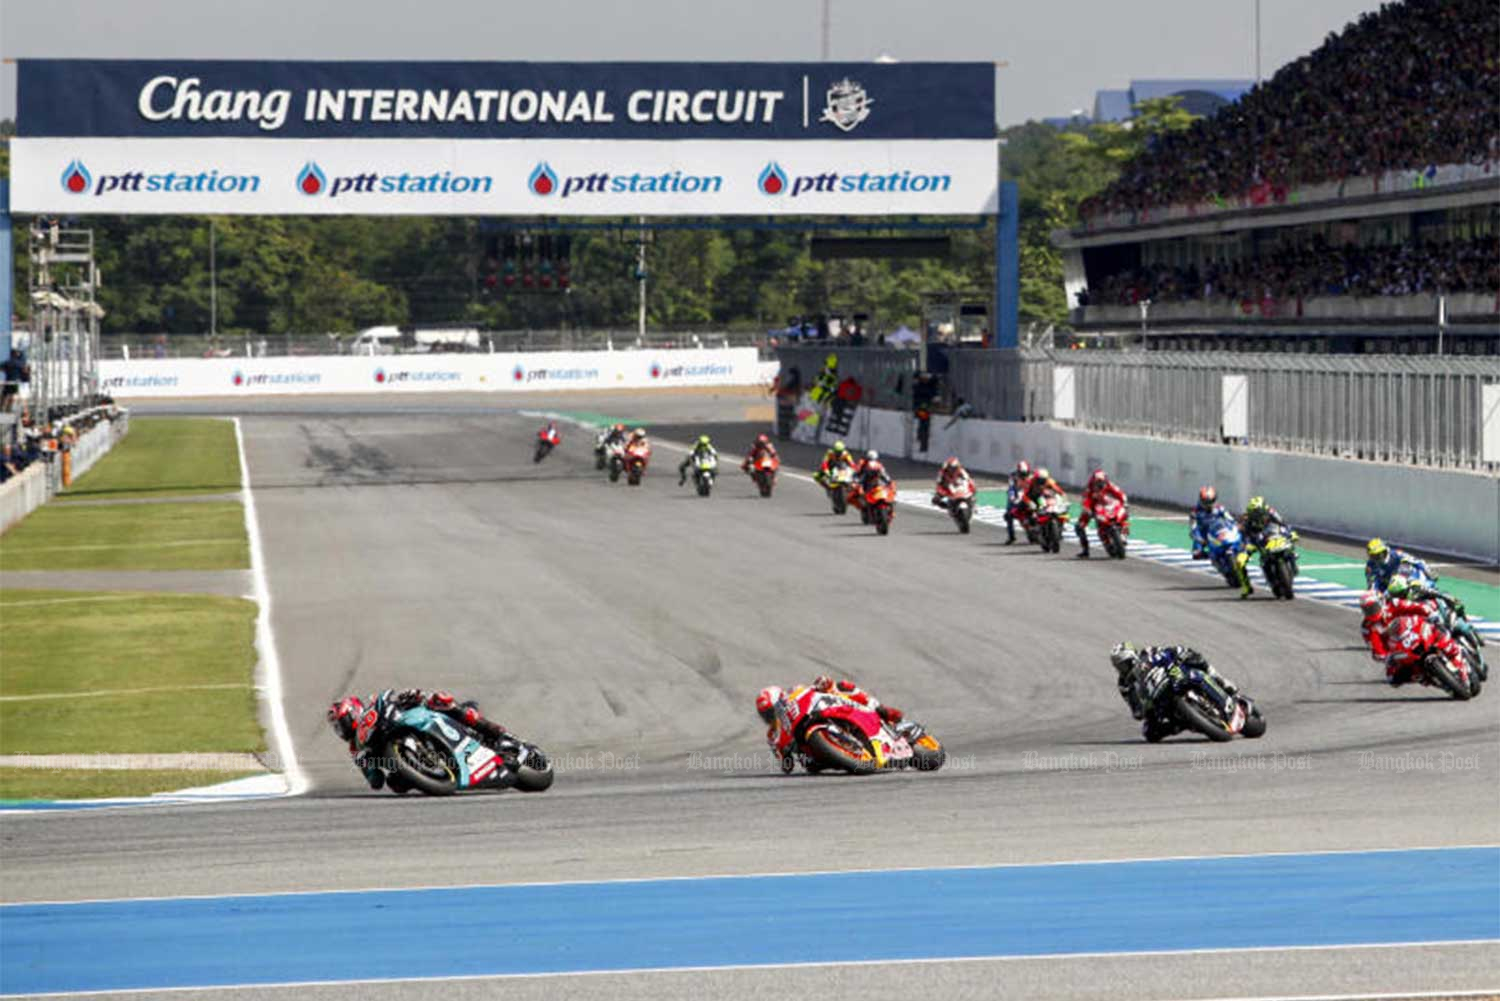 MotoGP at the Chang International Circuit, Buri Ram, on Oct 6, 2019. (File photo)